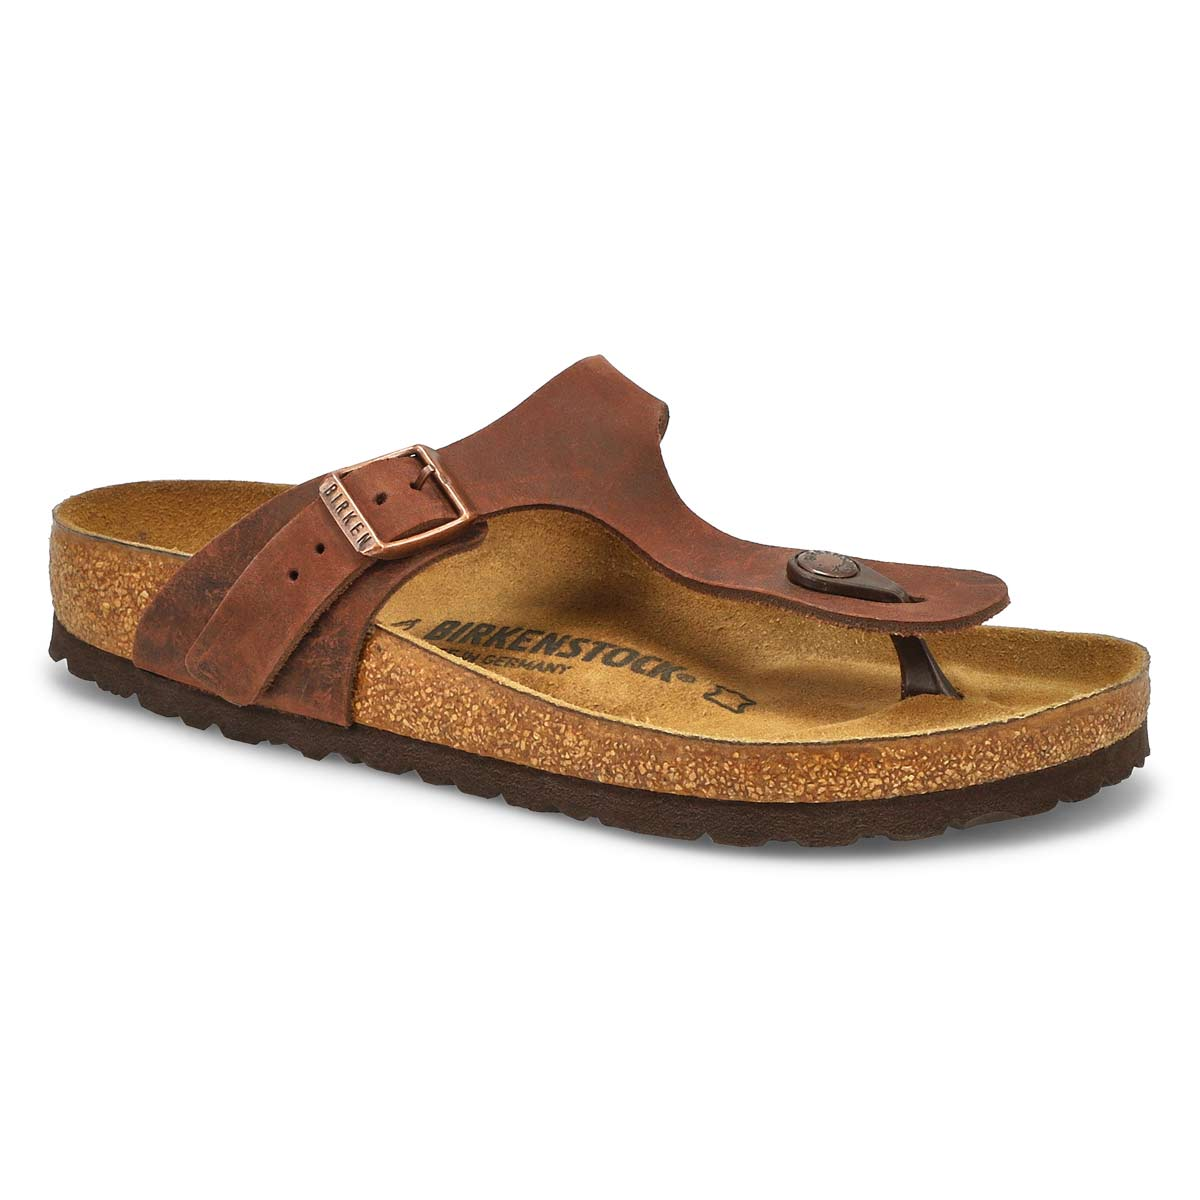 26562080a17 Women s GIZEH havana leather thong sandals